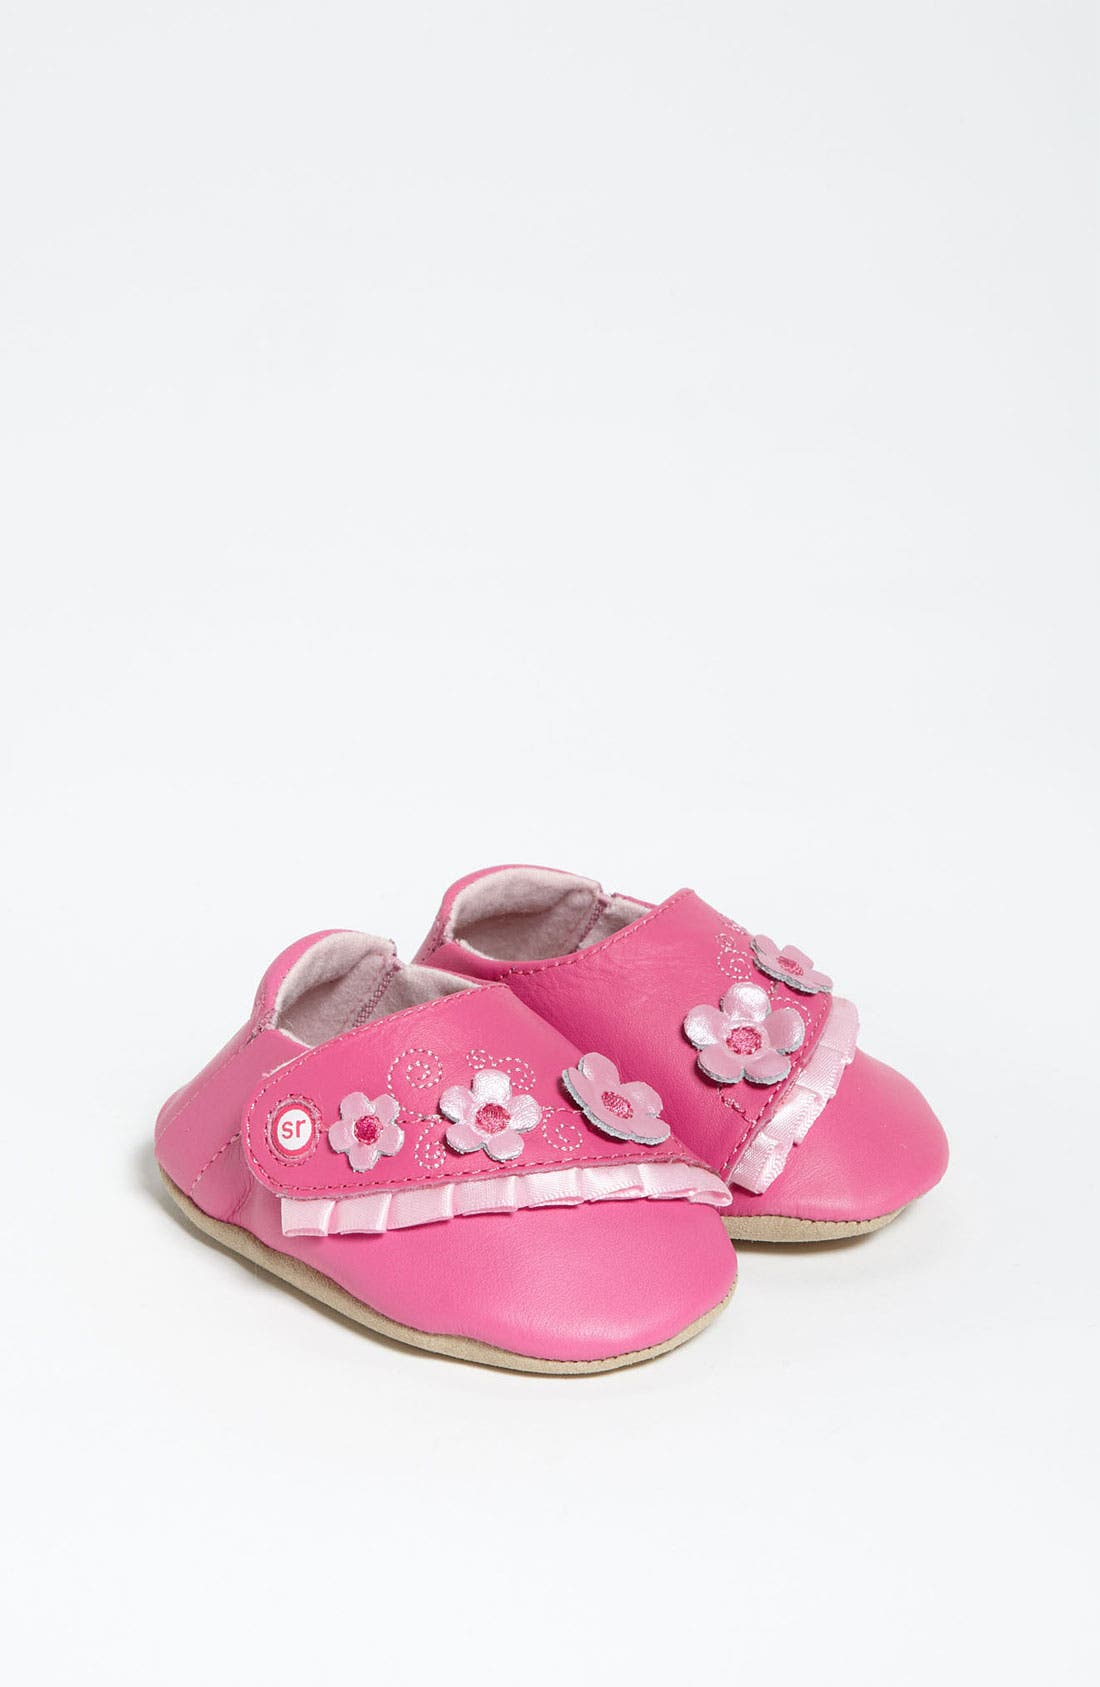 Alternate Image 1 Selected - Stride Rite 'Rosy Ruffles' Crib Shoe (Baby)